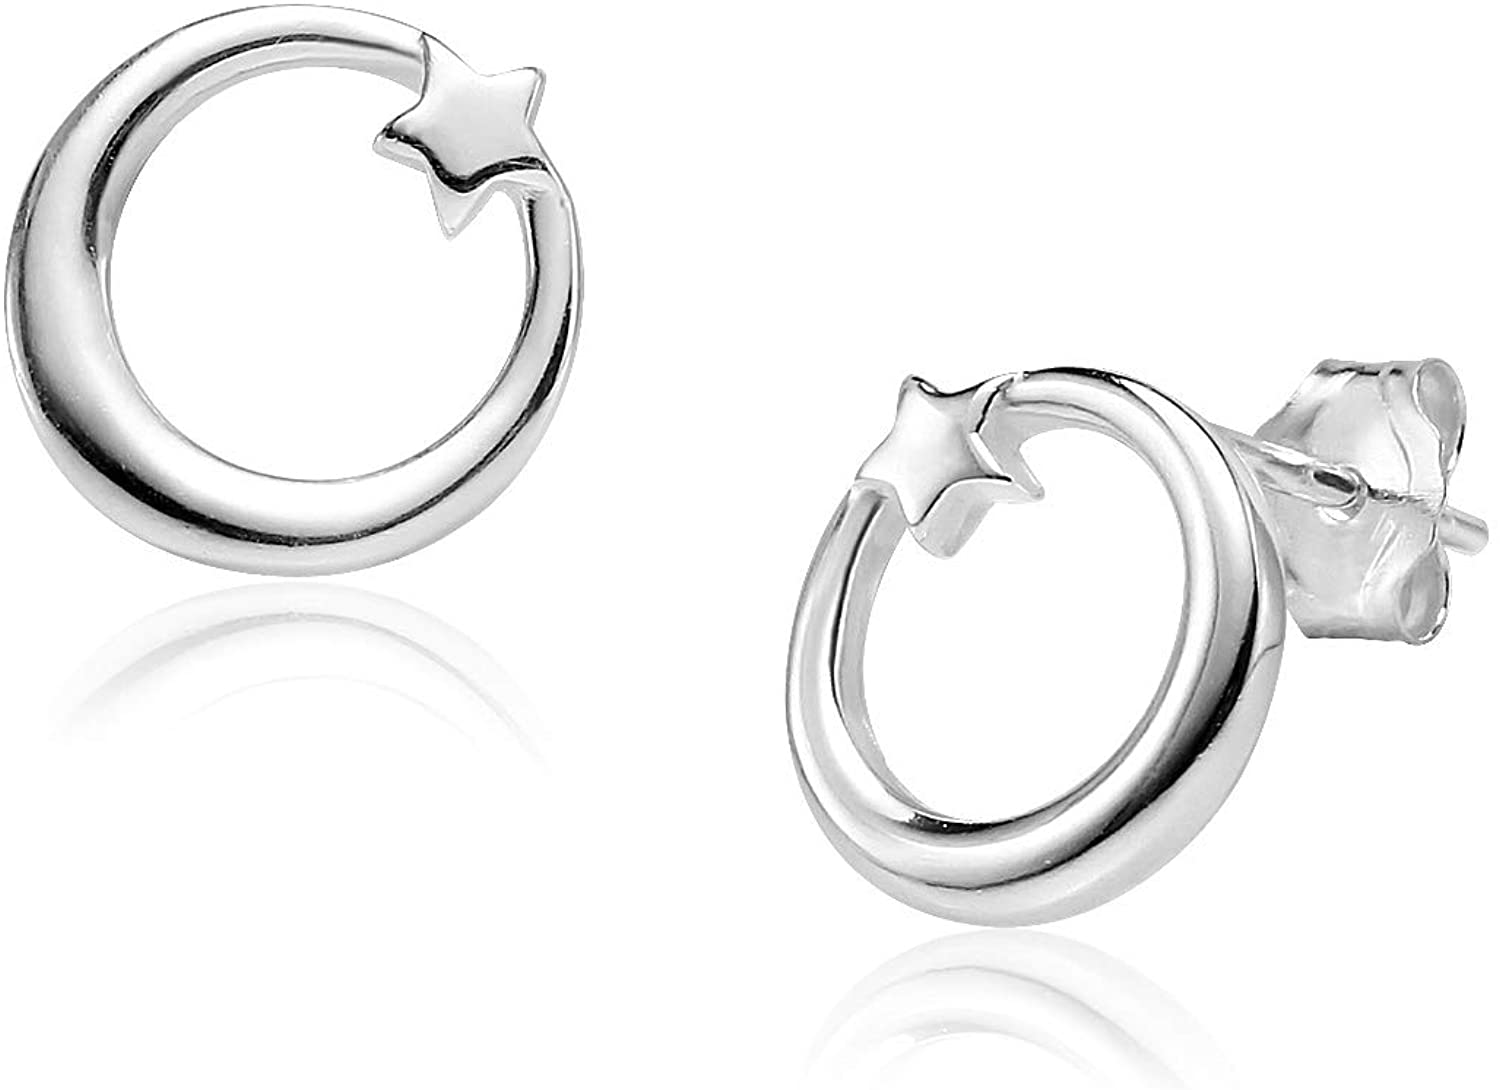 Big Apple Hoops - High Polished Sterling Silver Minimalist Circle with Heart Stud Earrings Made from Genuine Solid 925 Sterling Silver Special Fashion Gifts for Women, Teens, Men